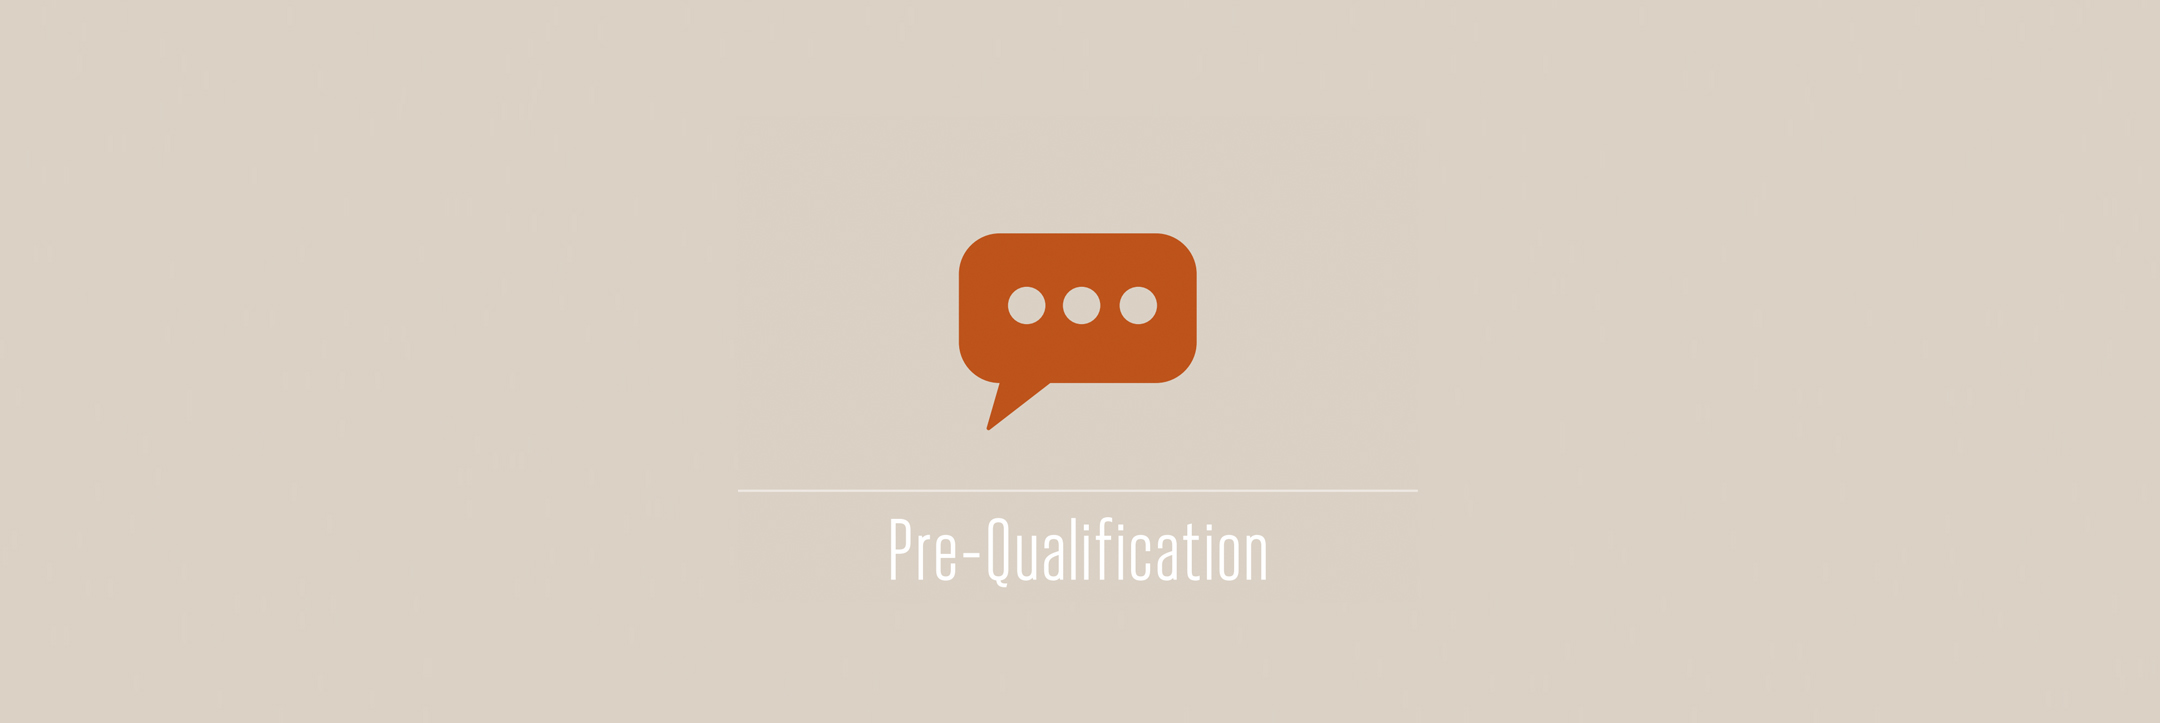 Pre-Qualification